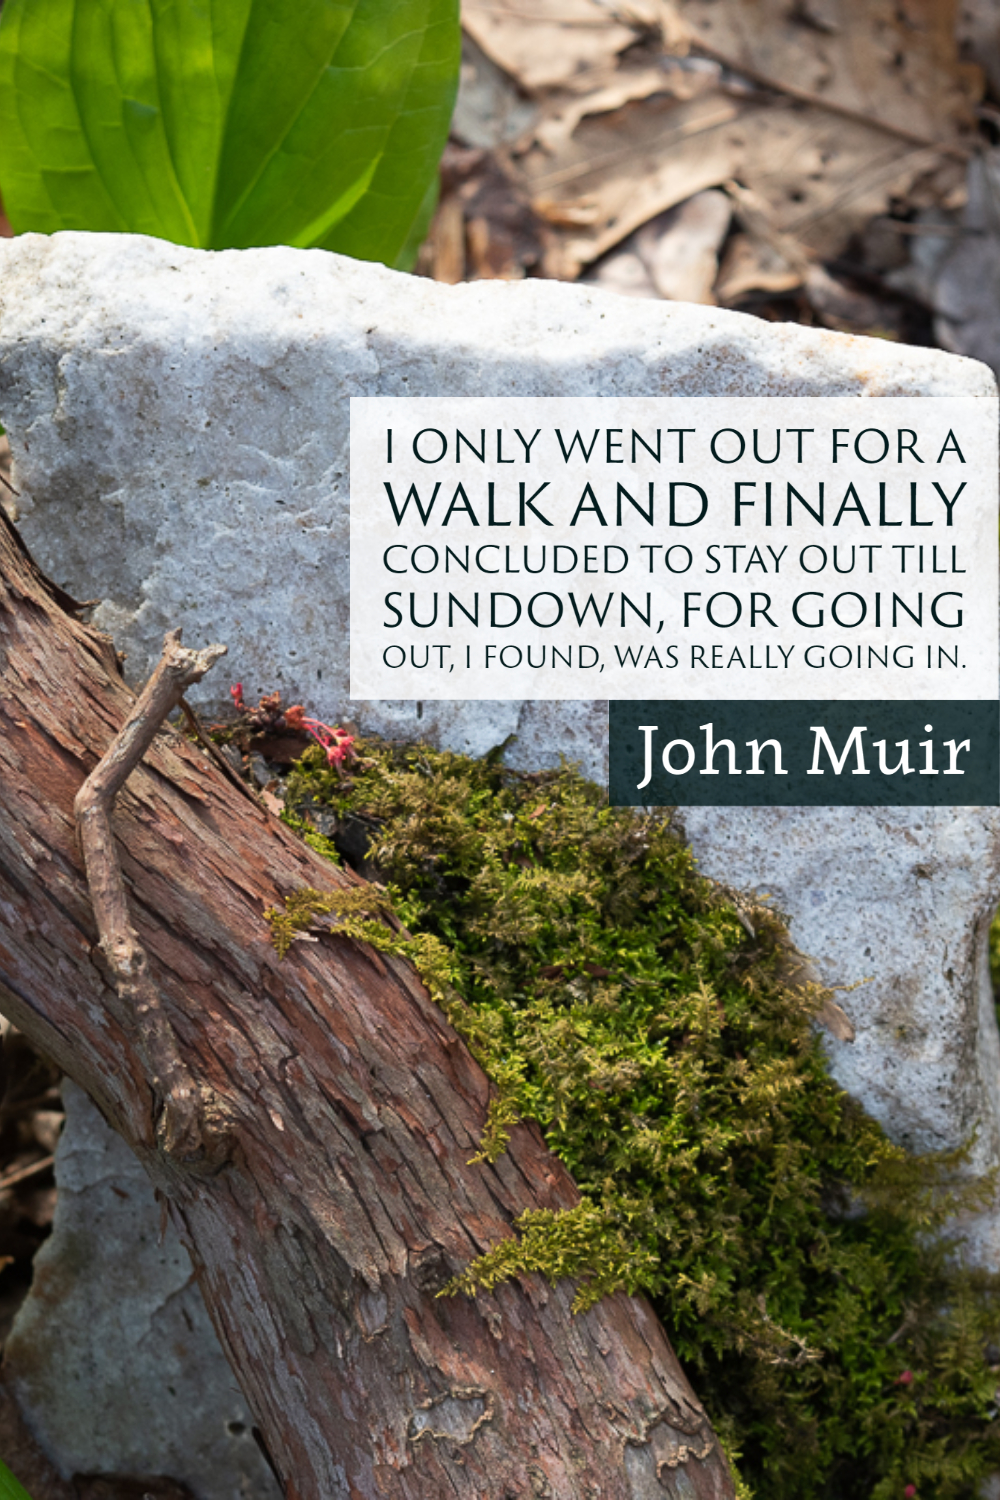 """""""I only went out for a walk and finally concluded to stay out till sundown, for going out, I found was really going in."""" ~John Muir"""